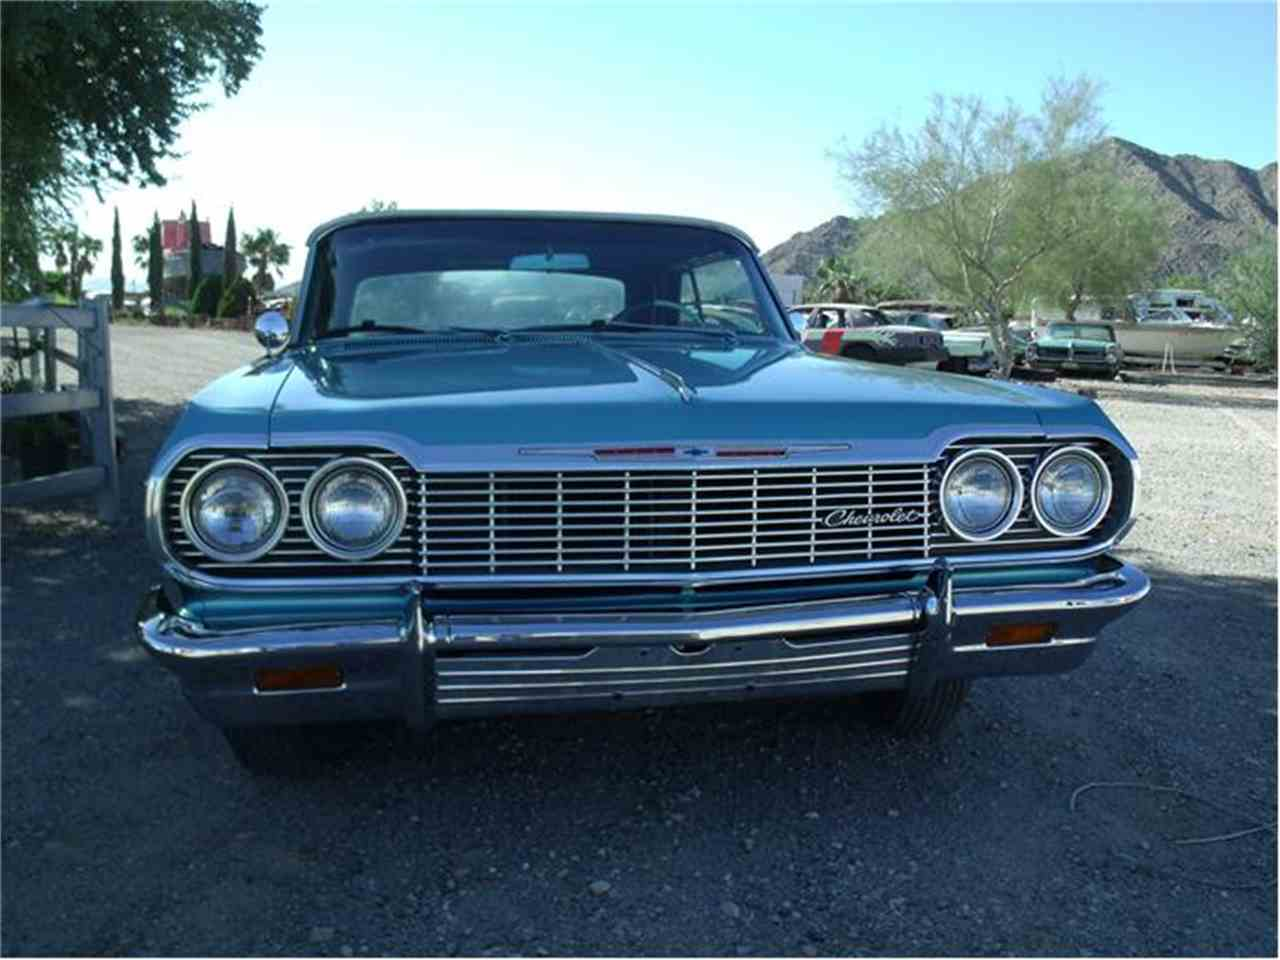 Chevrolet Impala Ss For Sale Classiccars Com Cc